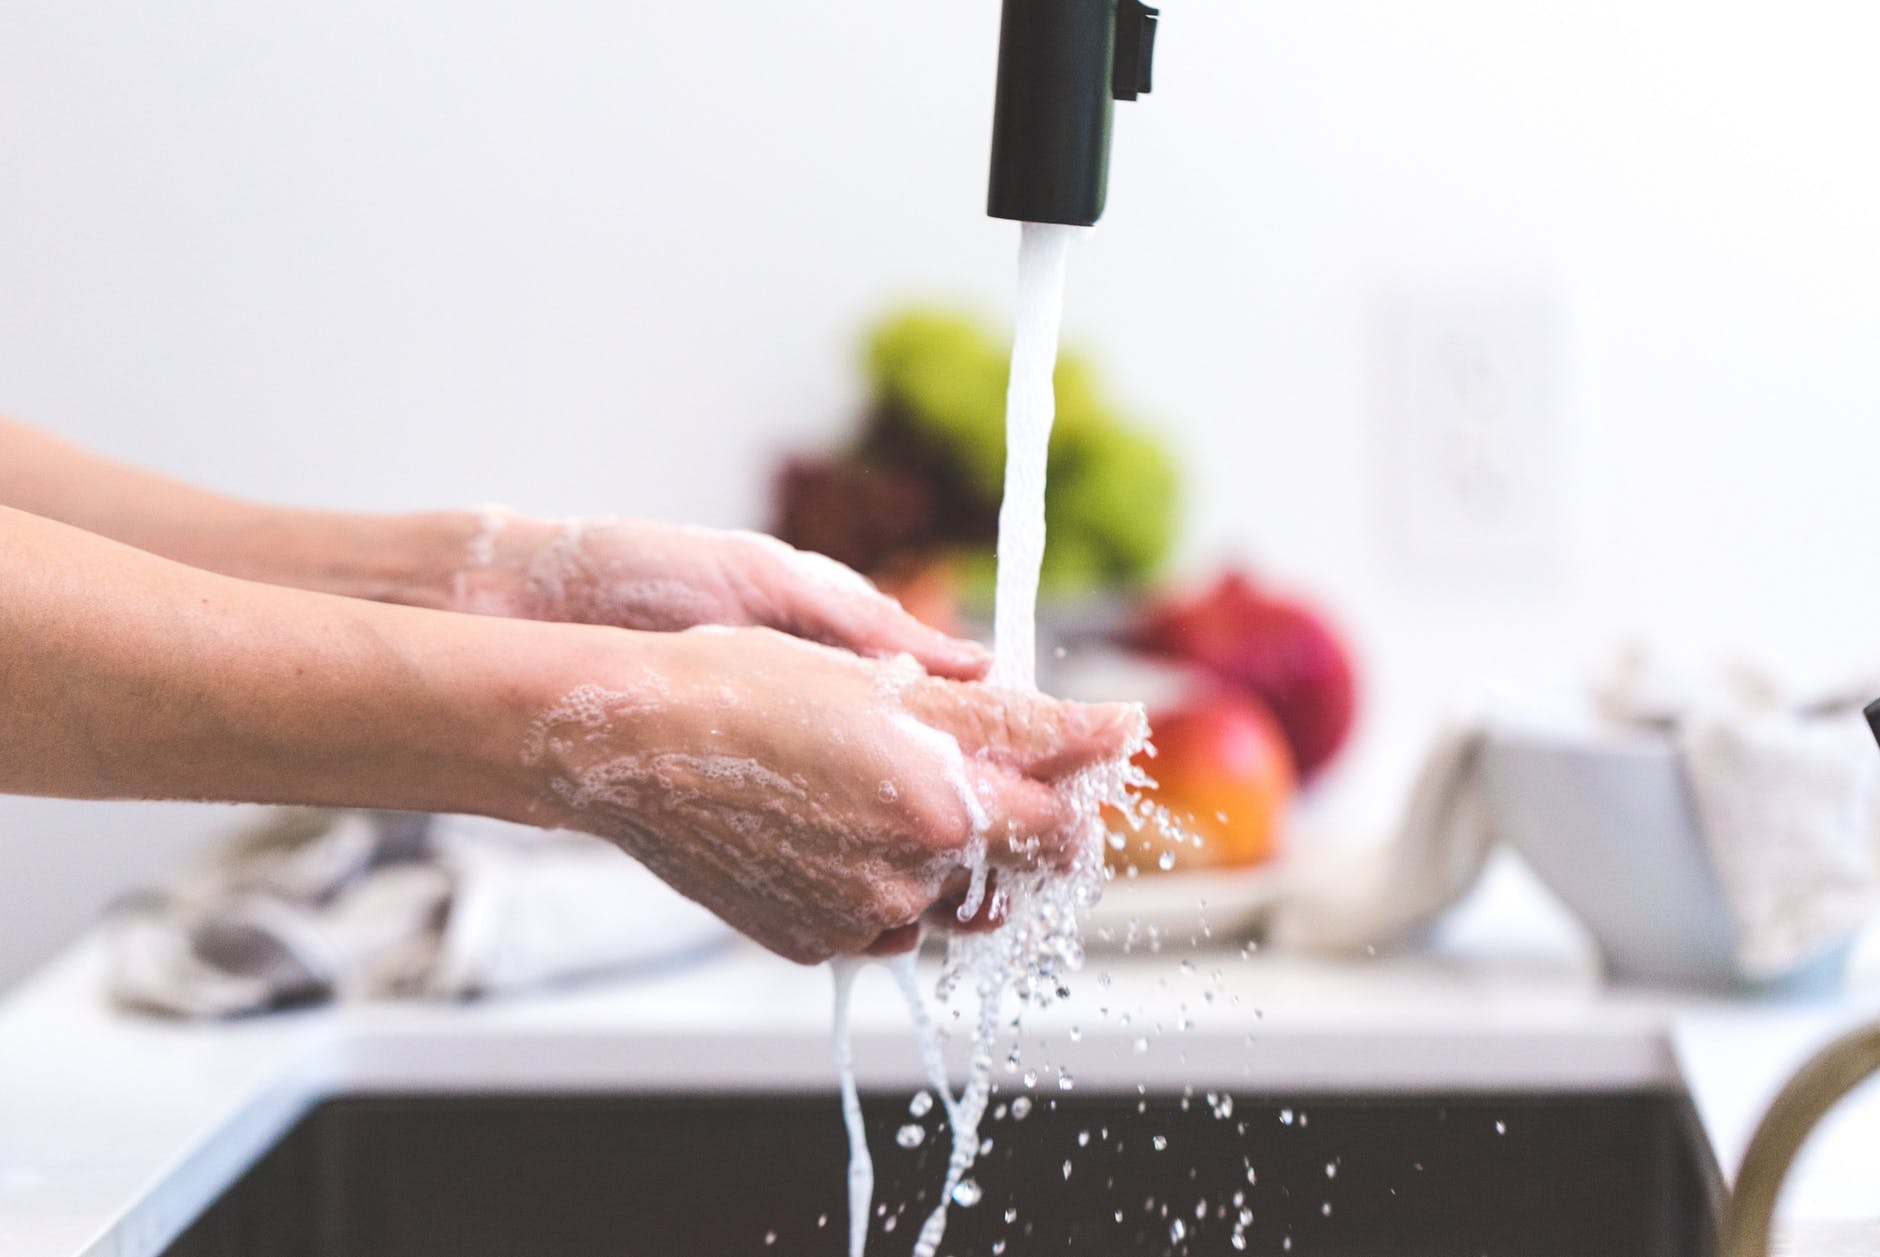 cooking hands handwashing health